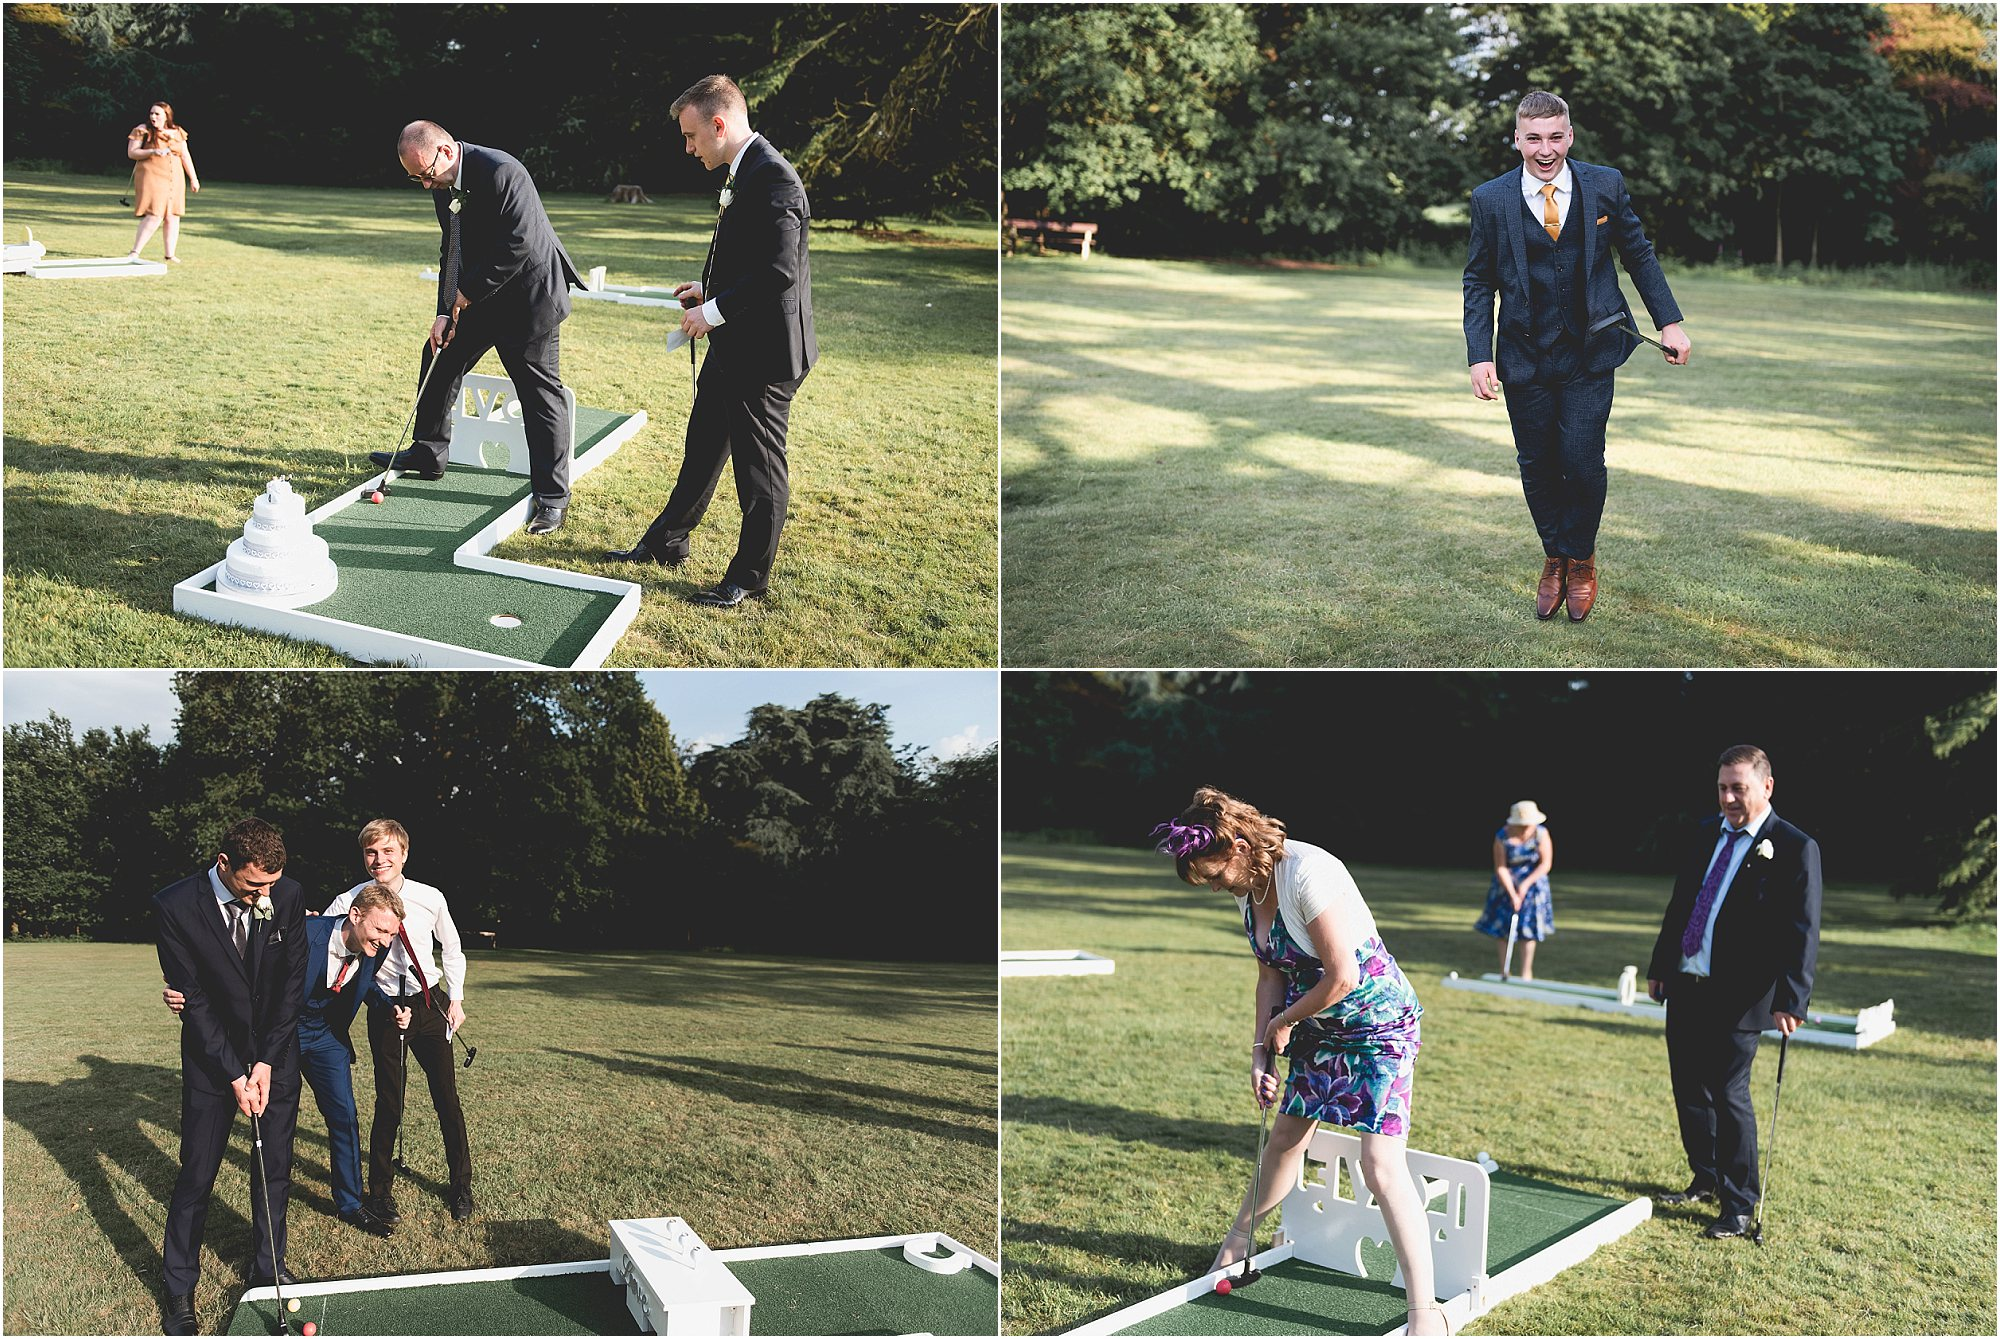 Wedding guests playing mini golf